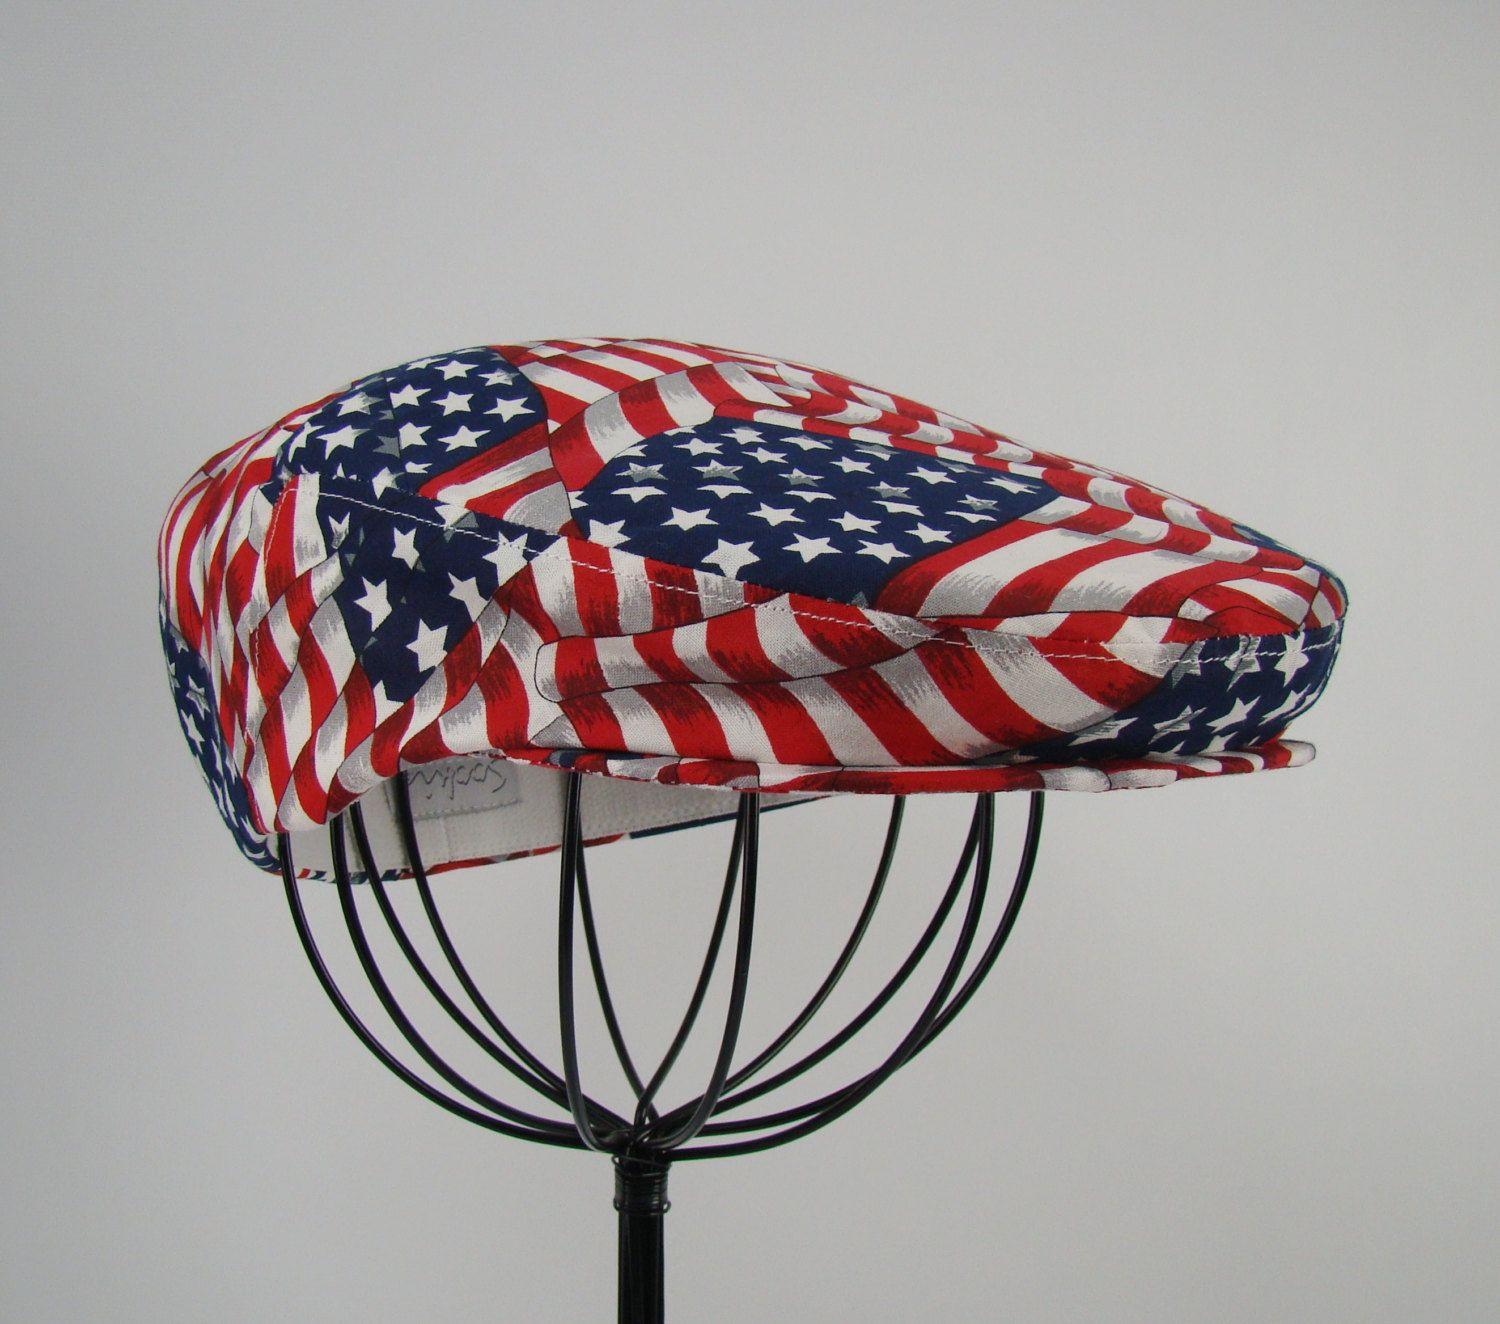 c484f90a2b6 Patriotic American Flag Inspired Patchwork Print Cotton Jeff Cap ...